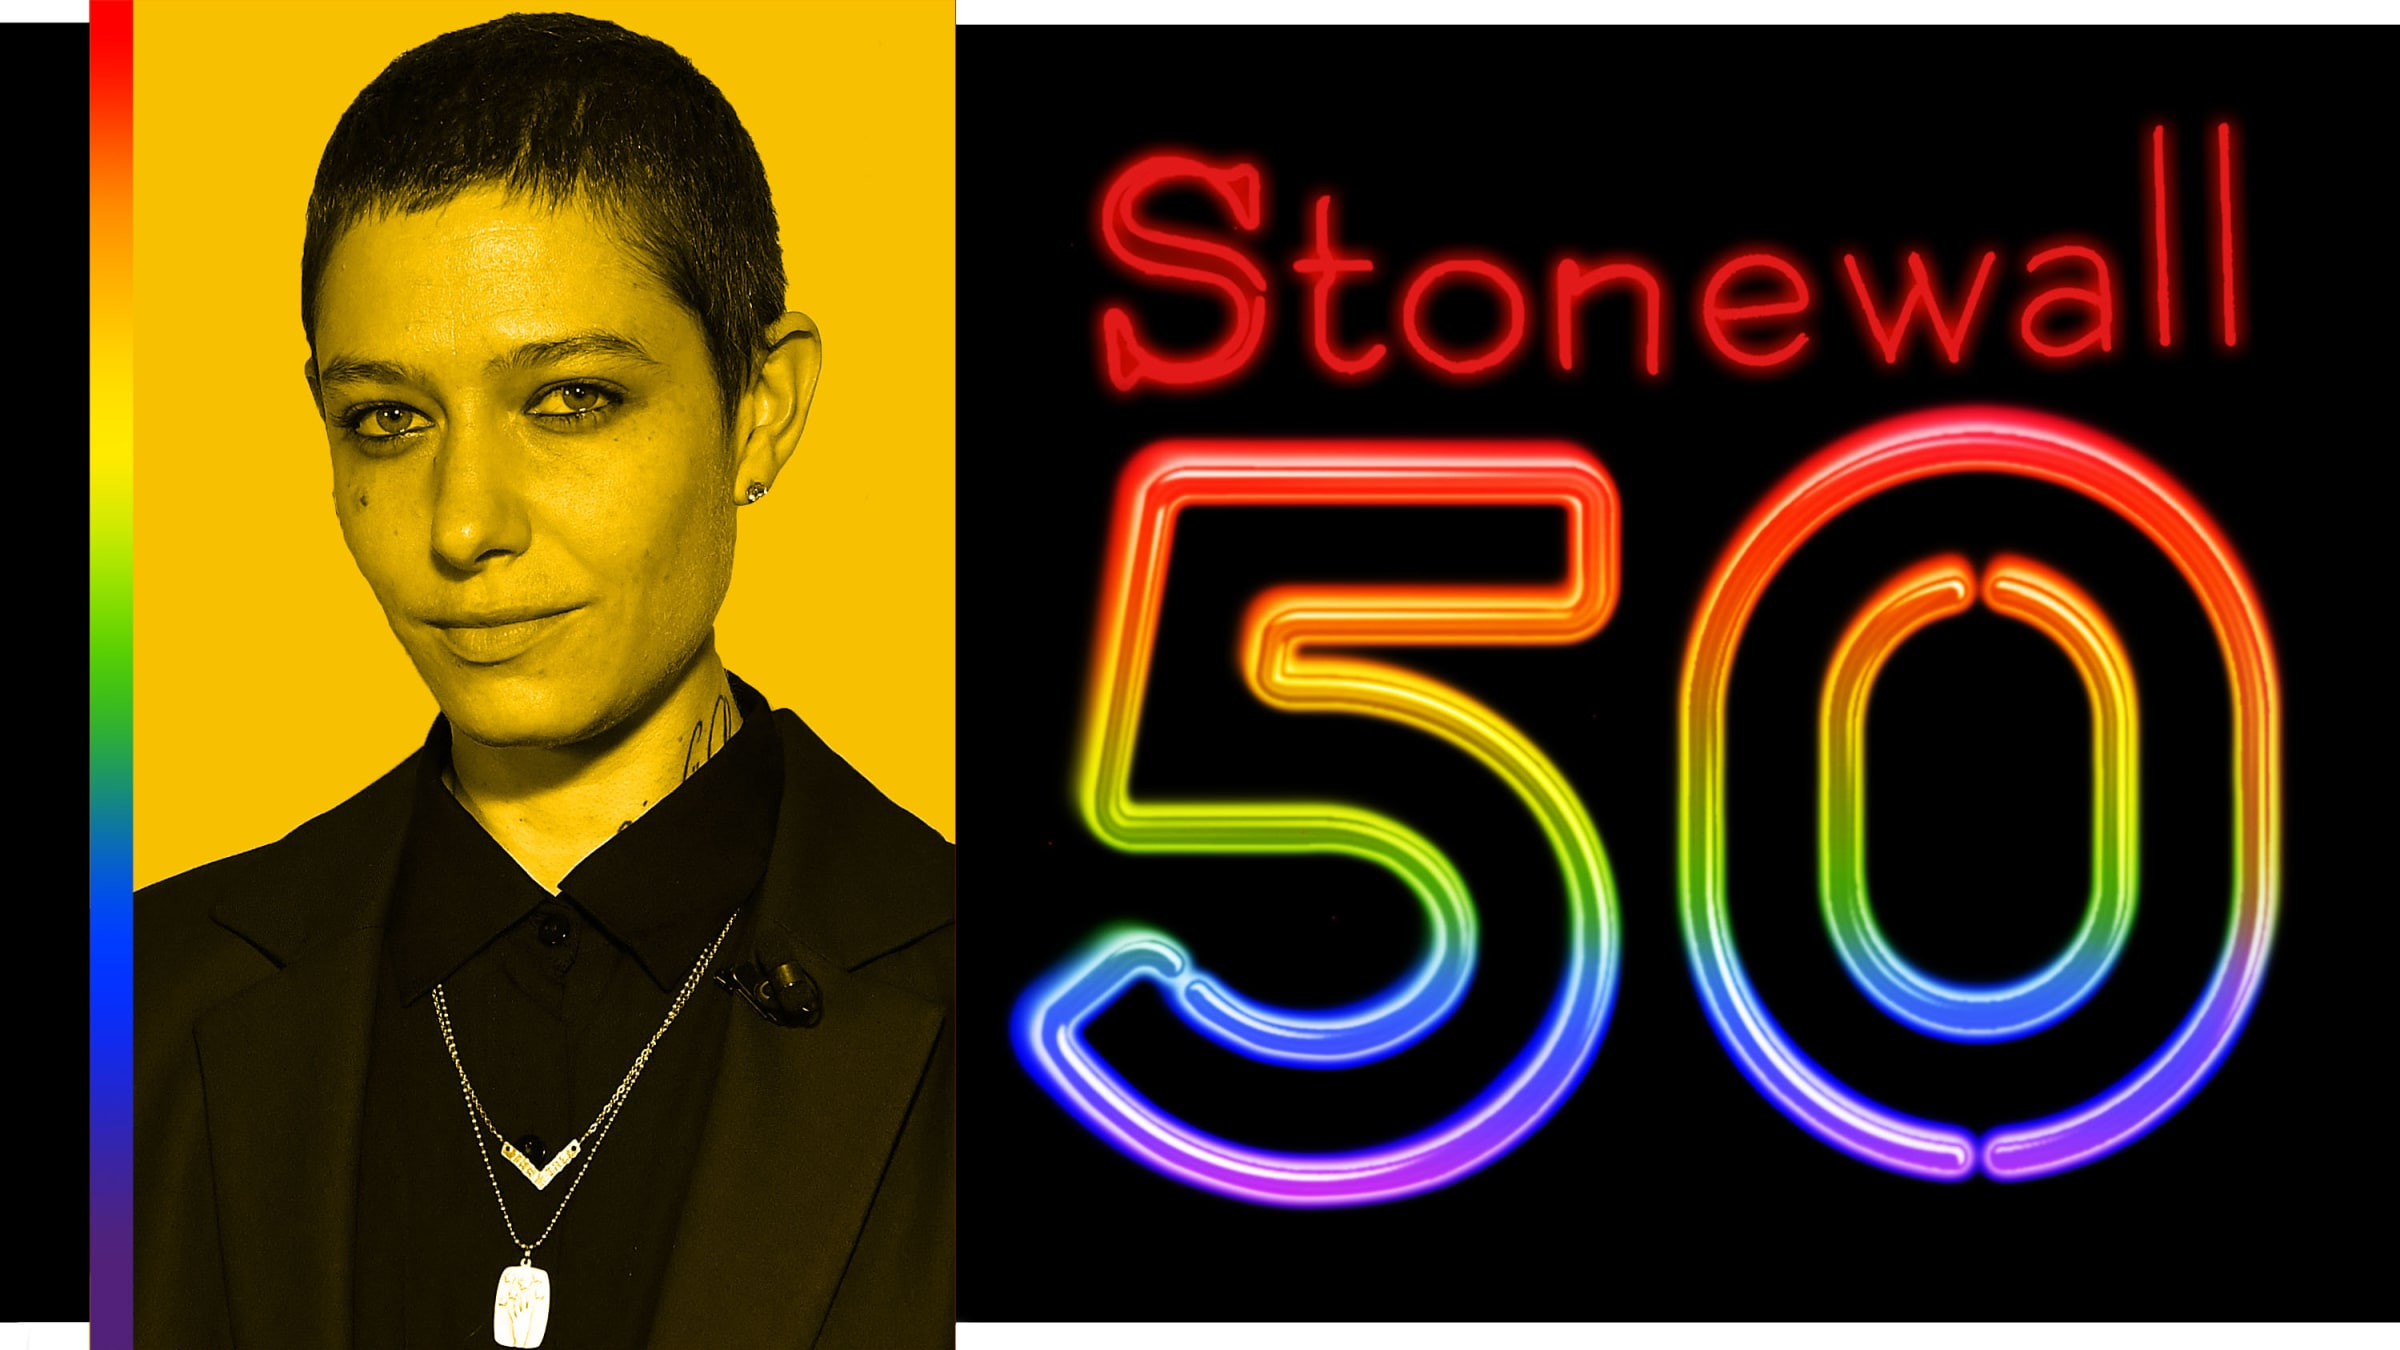 Asia Kate Dillon: 'The Legacy of Stonewall Demands That We Center, Uplift, and Support the Most Marginalized'